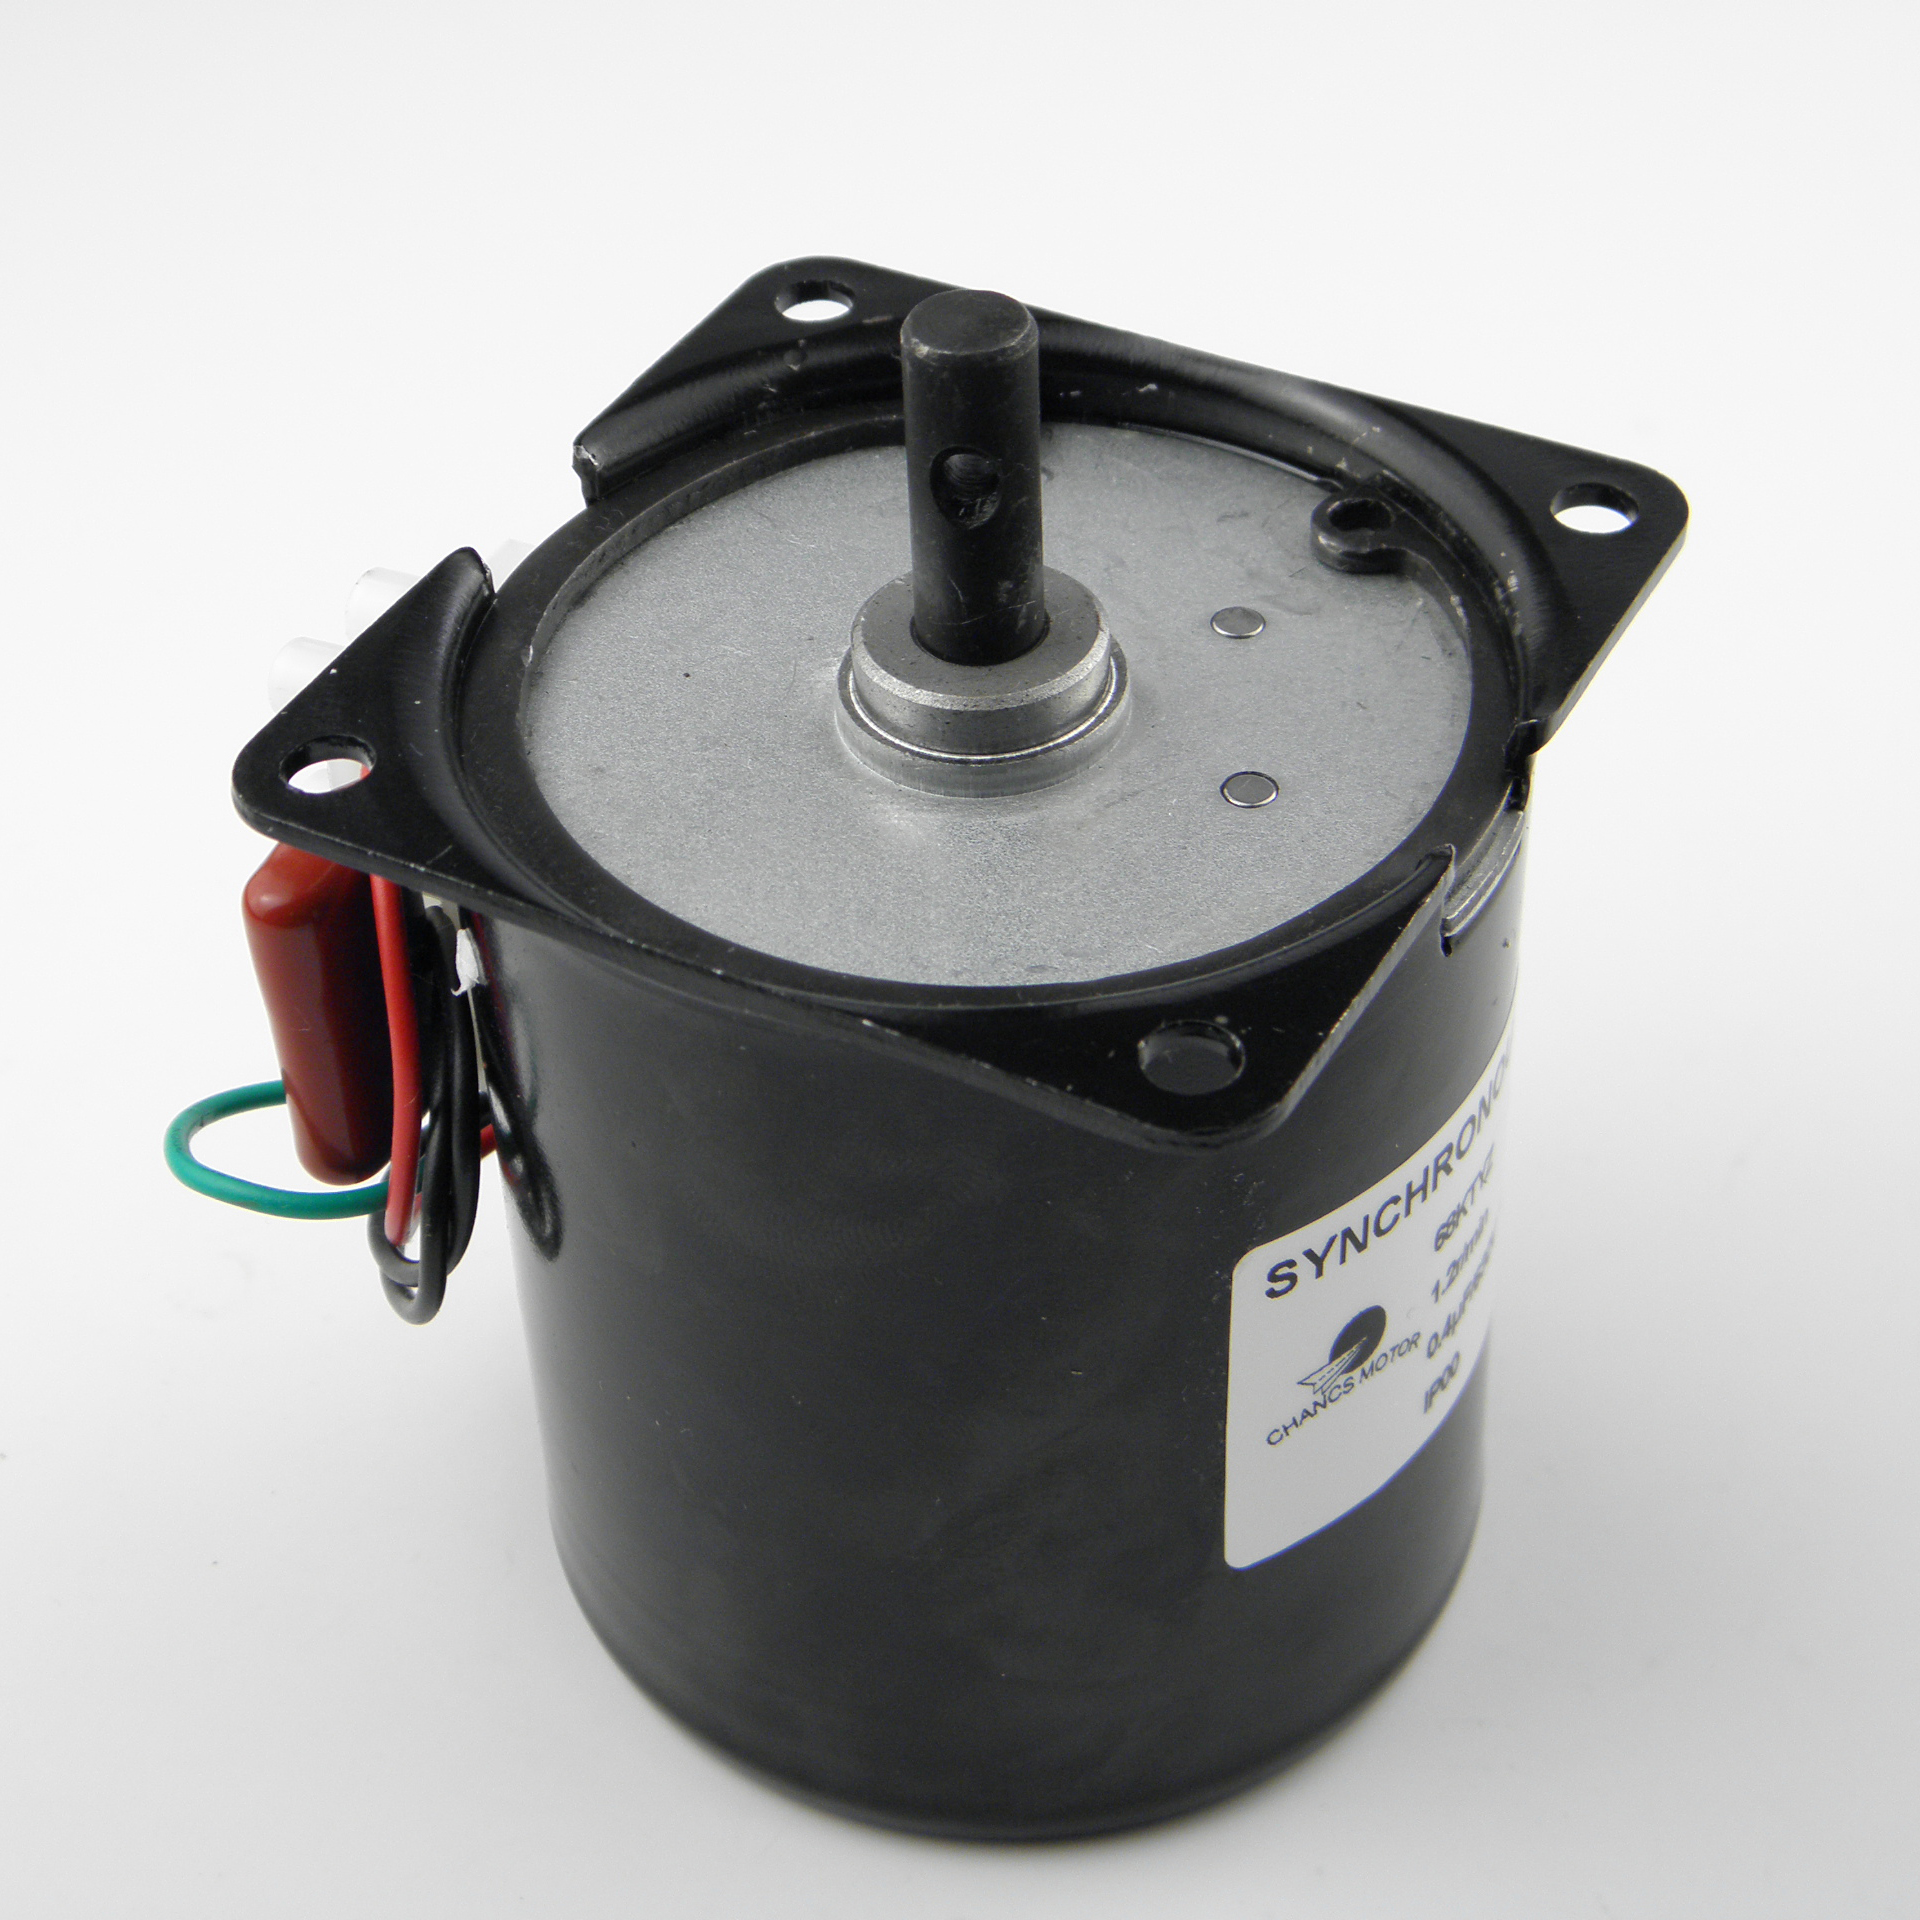 68KTYZ <font><b>220V</b></font> <font><b>10RPM</b></font> AC Synchronous <font><b>Motor</b></font> With Bracket for Smart Application image